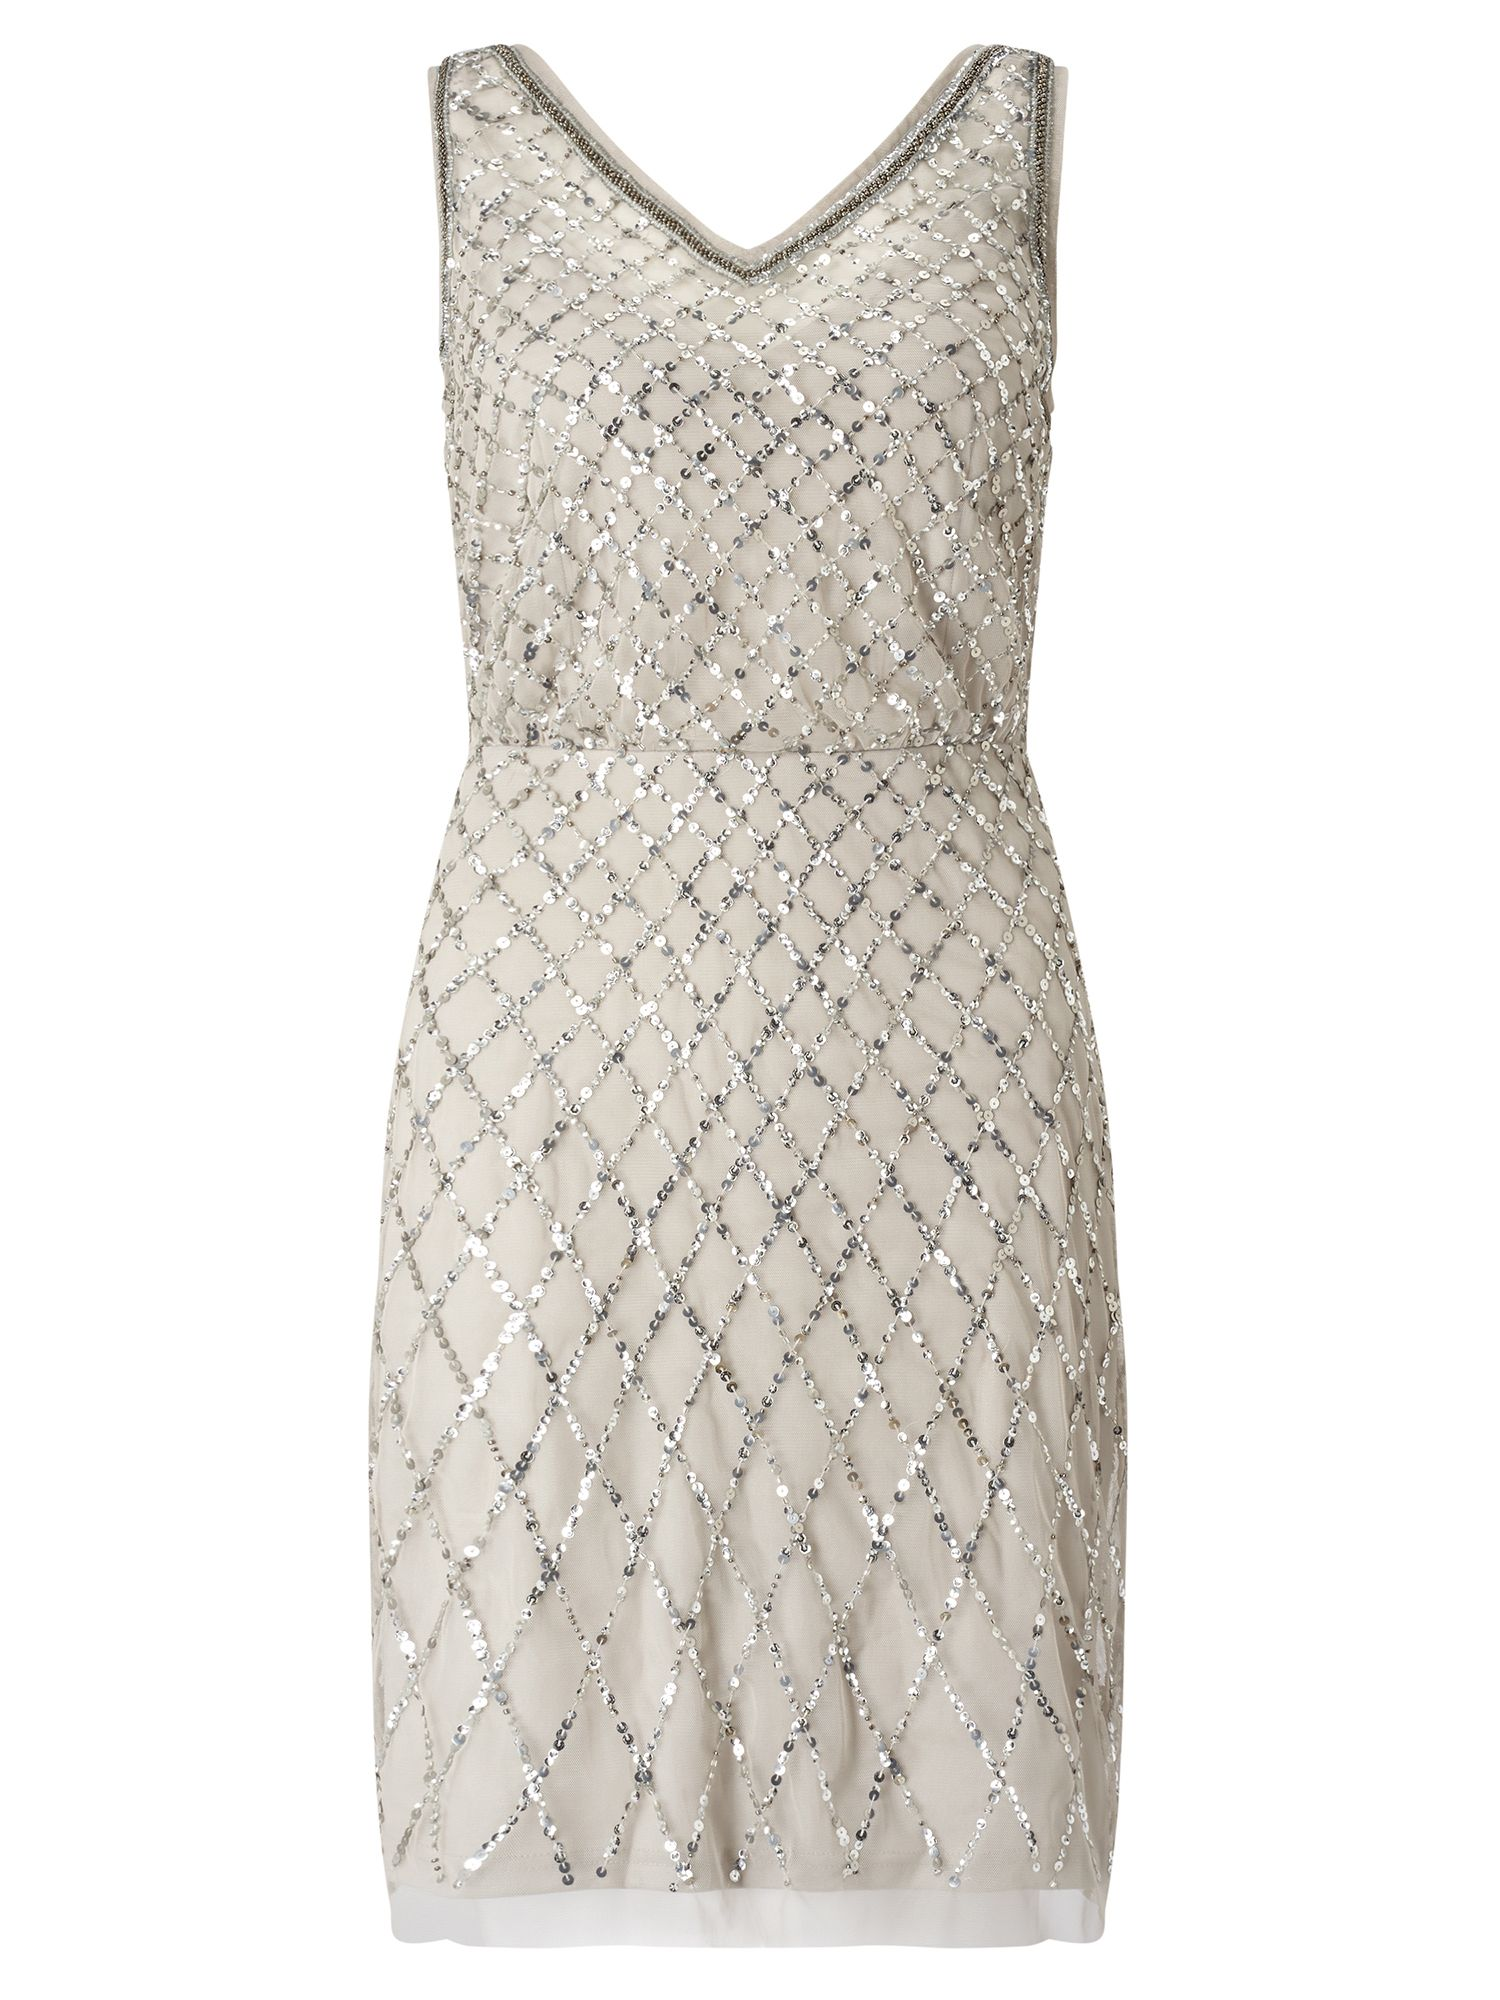 Adrianna Papell Beaded Cocktail Dress Silver